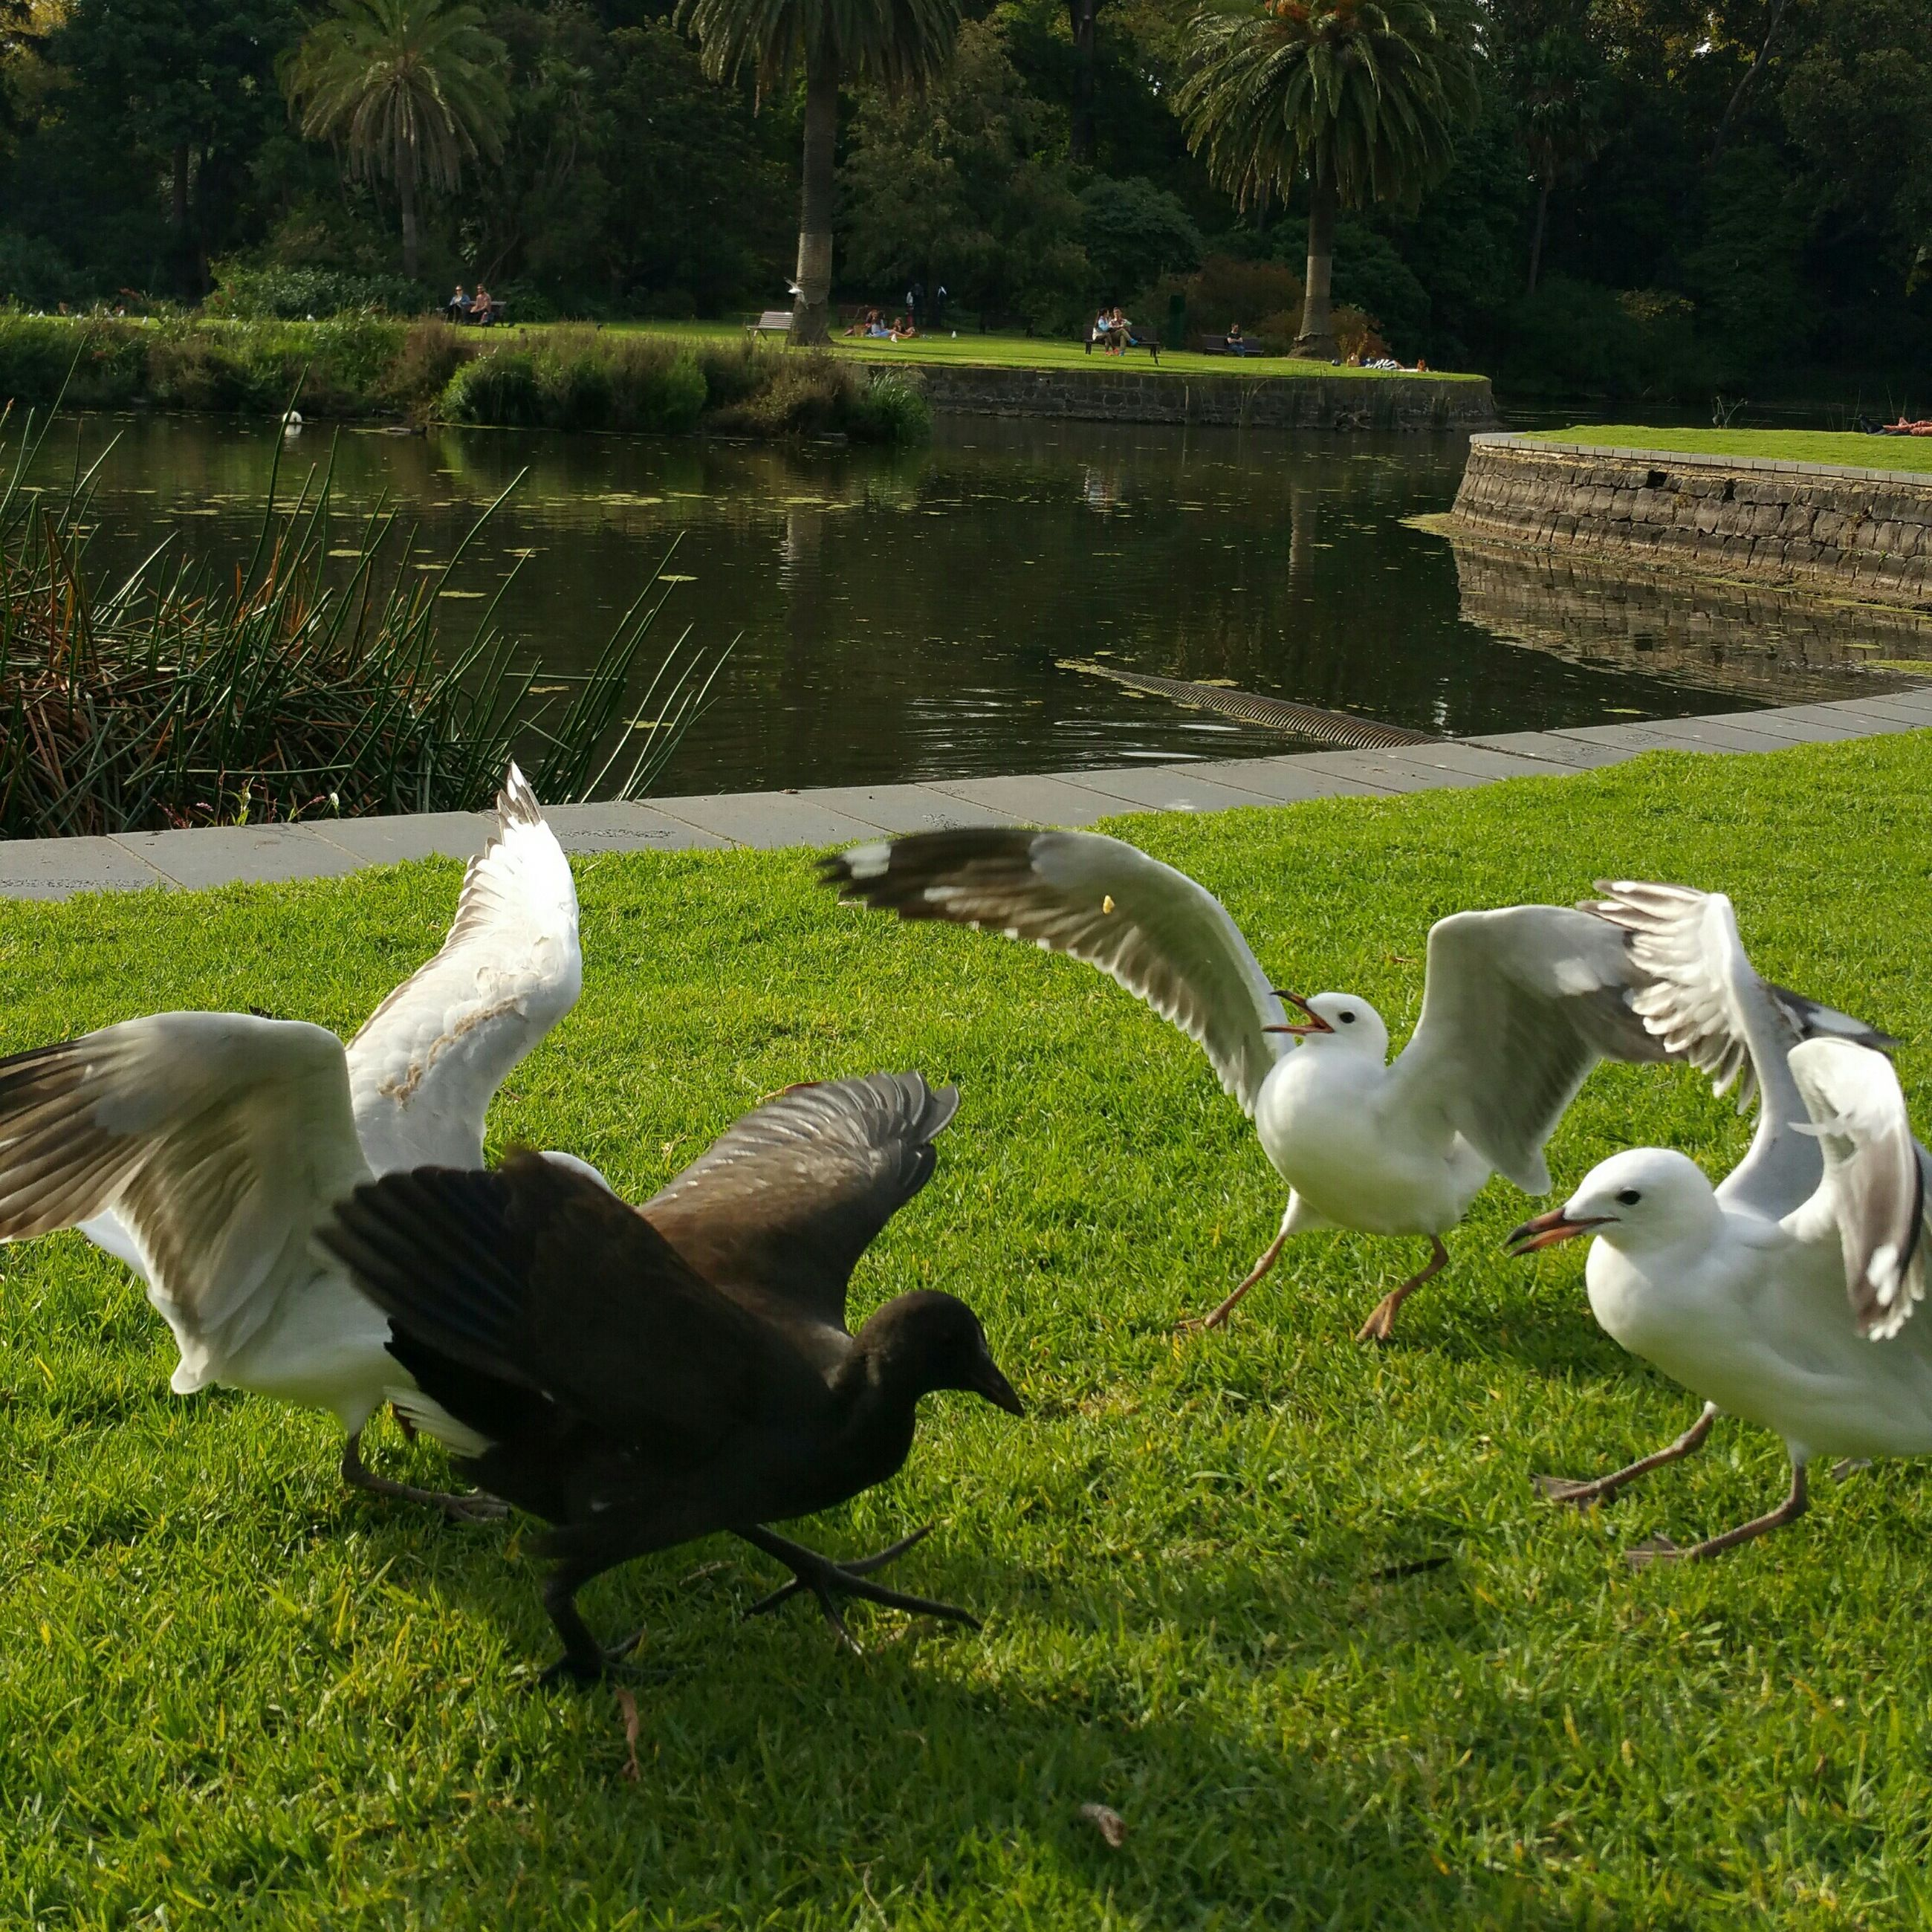 grass, bird, animal themes, animals in the wild, wildlife, park - man made space, statue, green color, sculpture, grassy, swan, lawn, animal representation, field, duck, tree, nature, human representation, sunlight, day